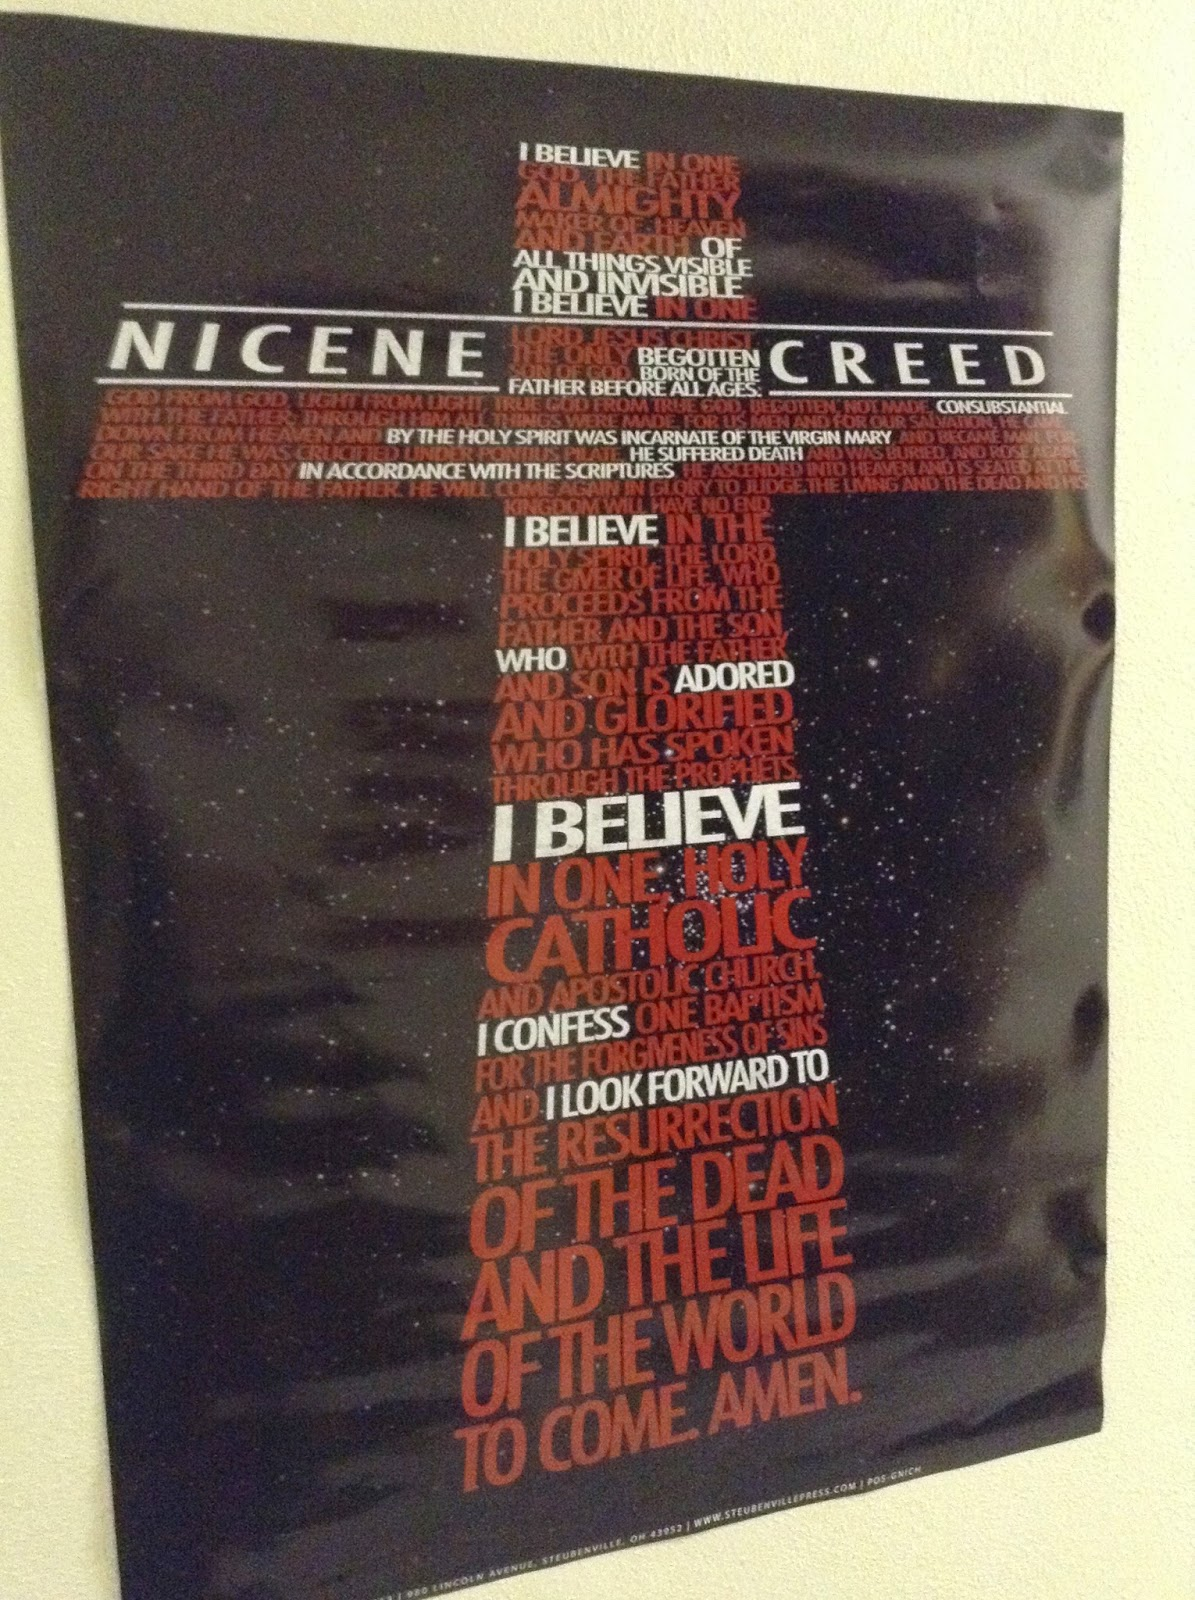 http://www.steubenvillepress.com/new-nicene-creed-poster/